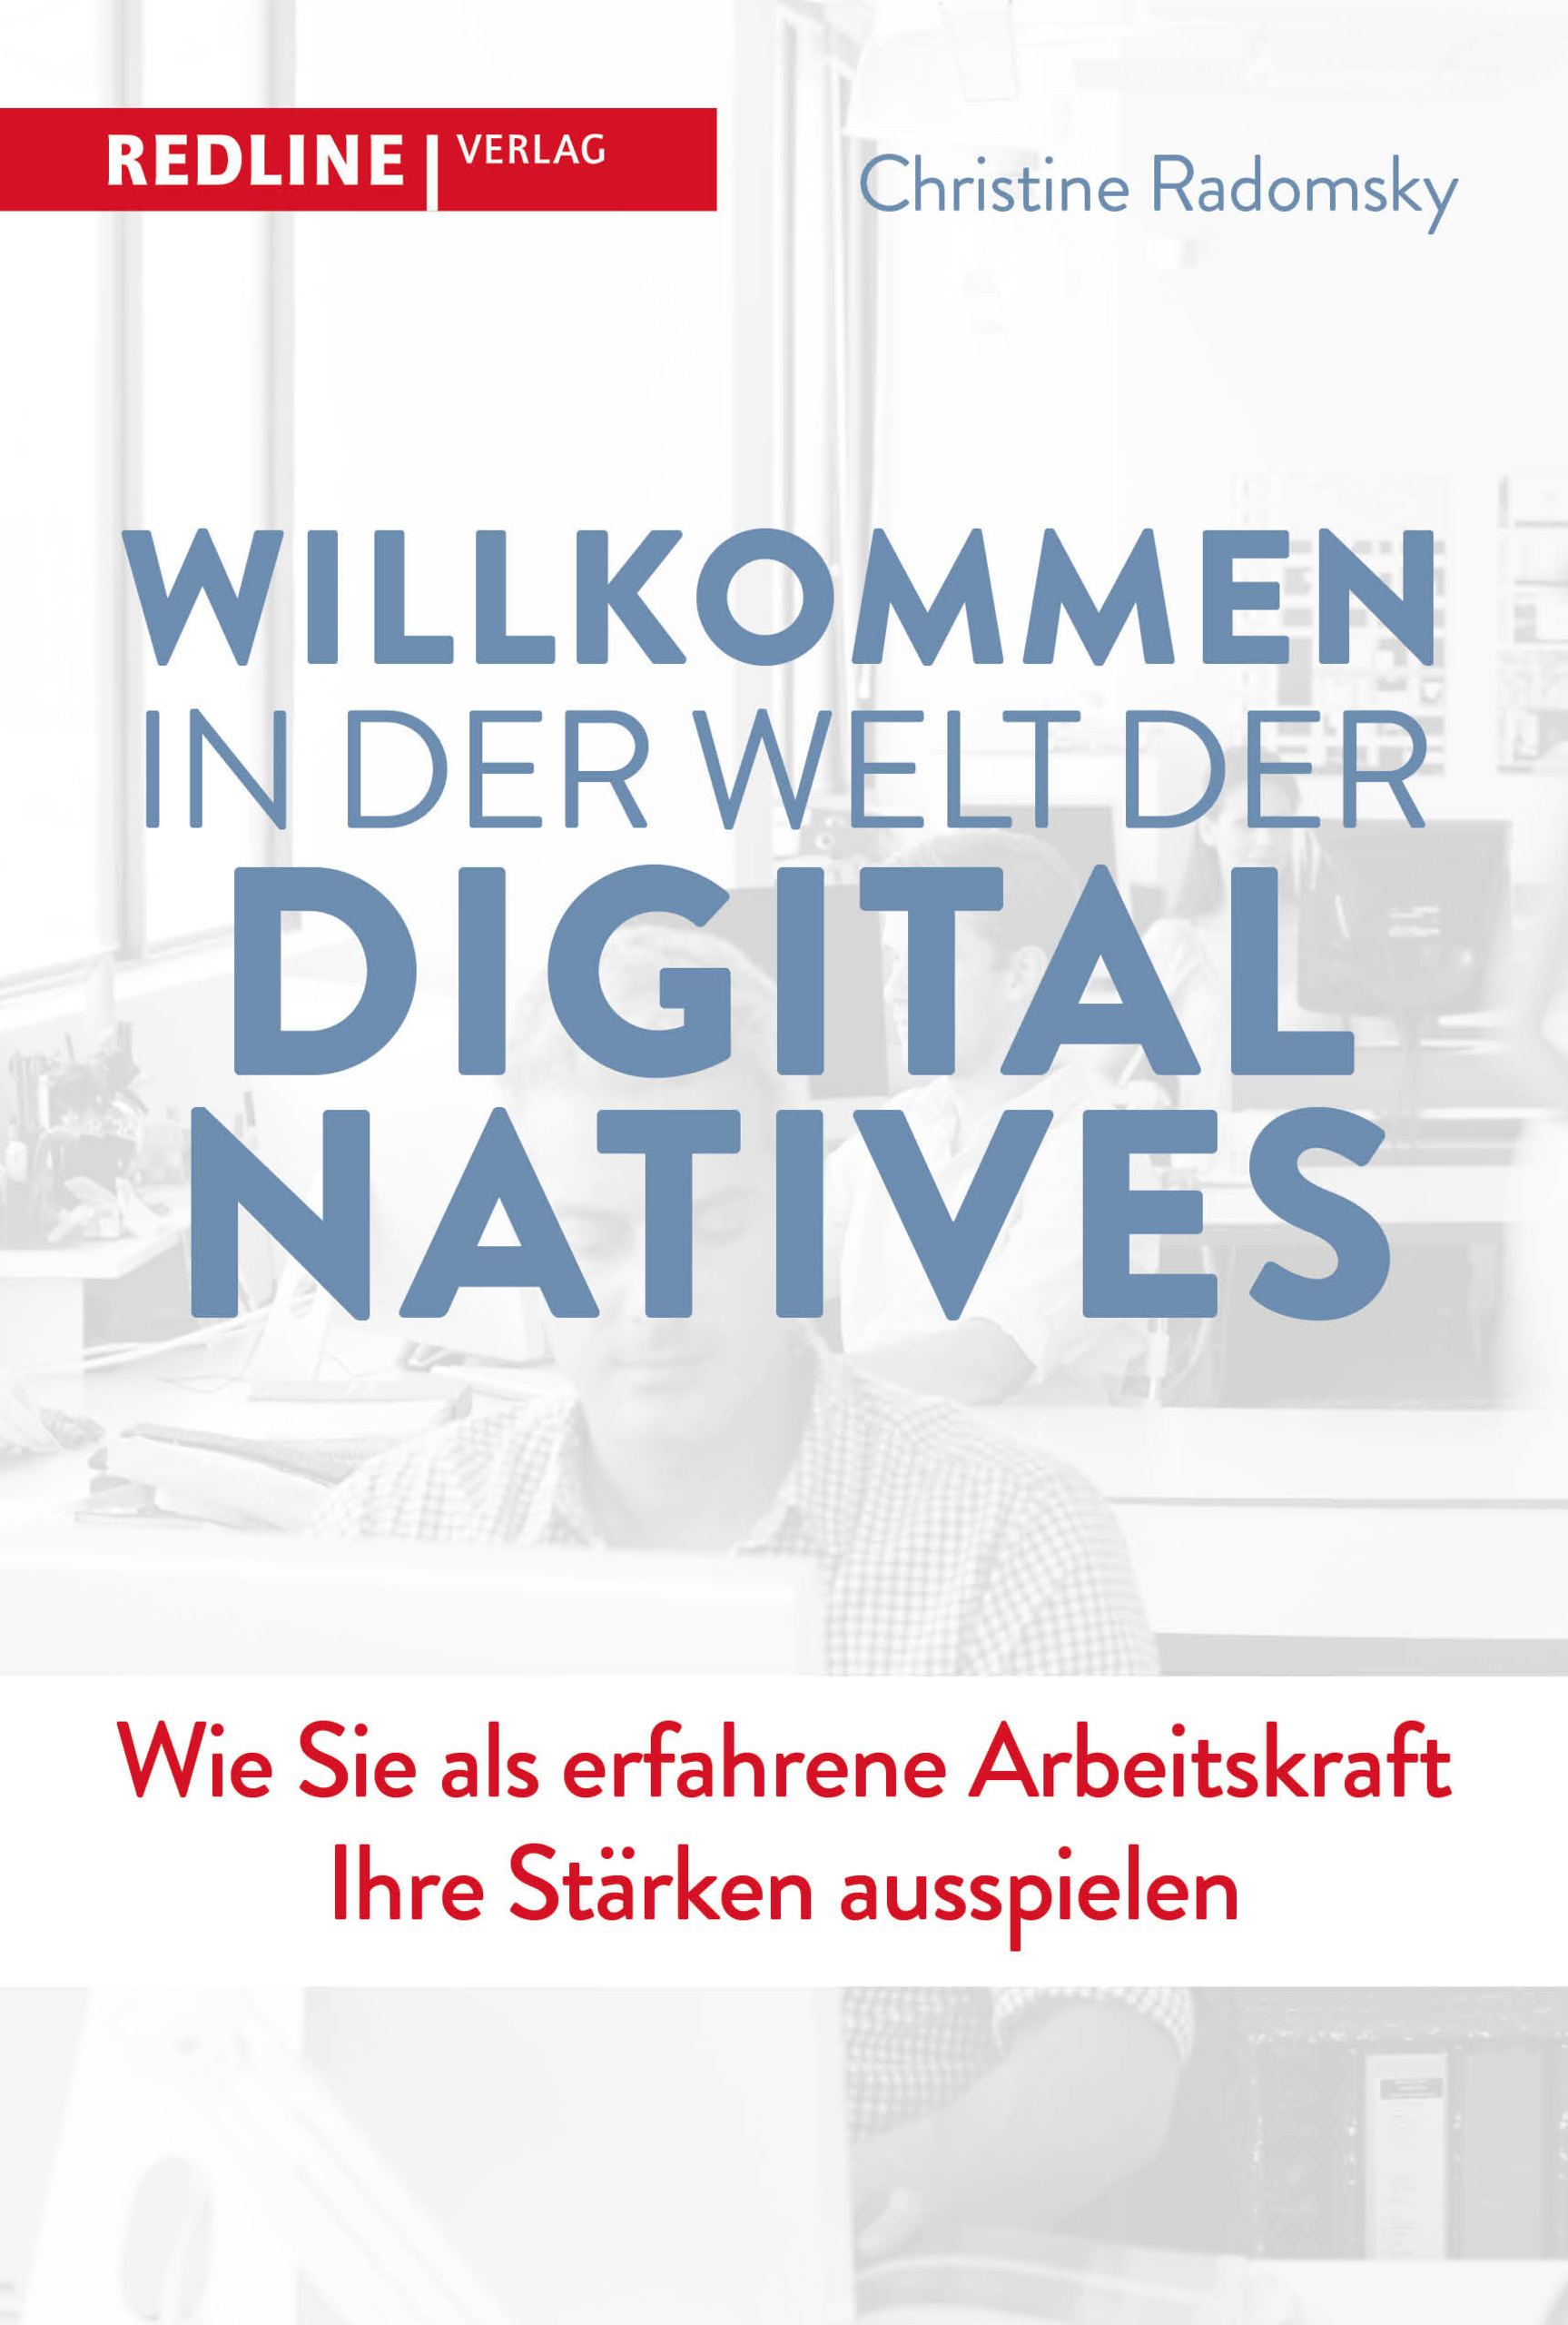 Digitale Transformation in der Arbeitswelt